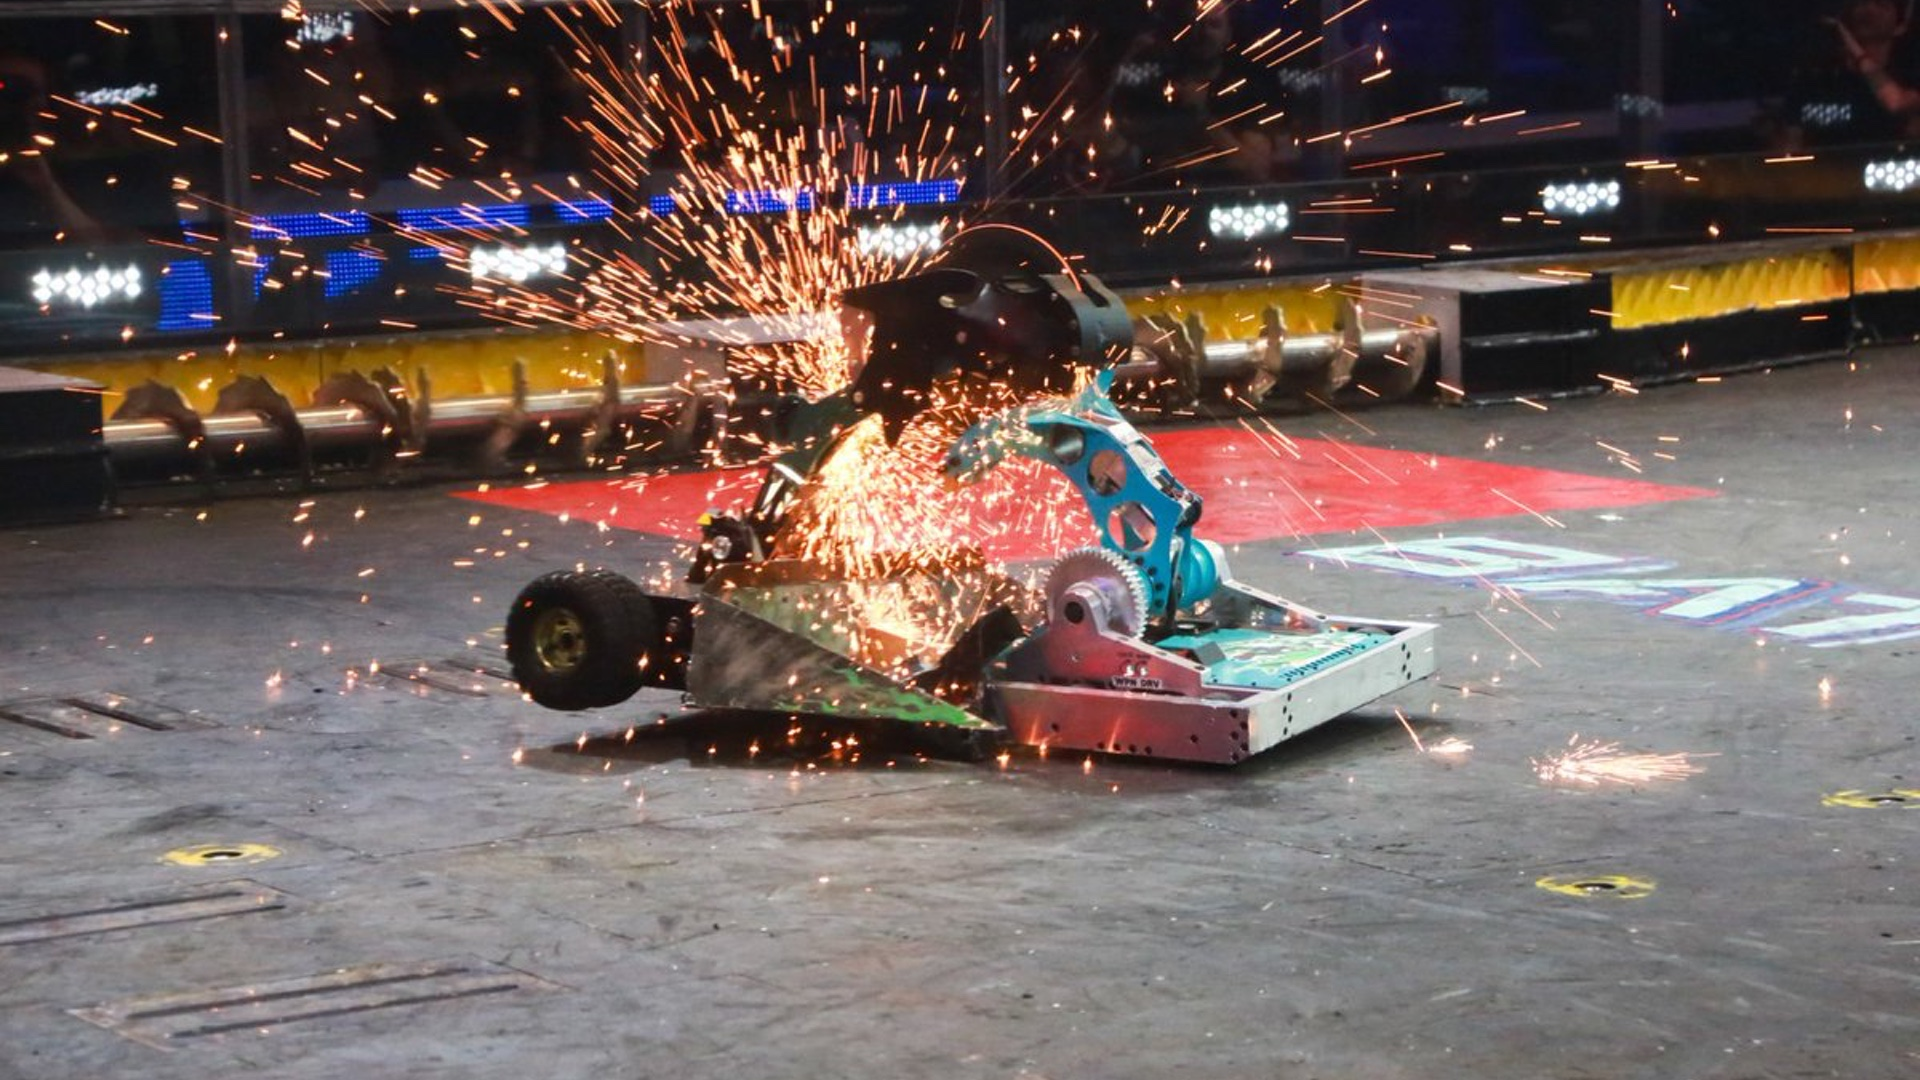 battlebots-is-making-a-comeback-and-is-returning-to-the-discovery-and-science-channels-social.jpg